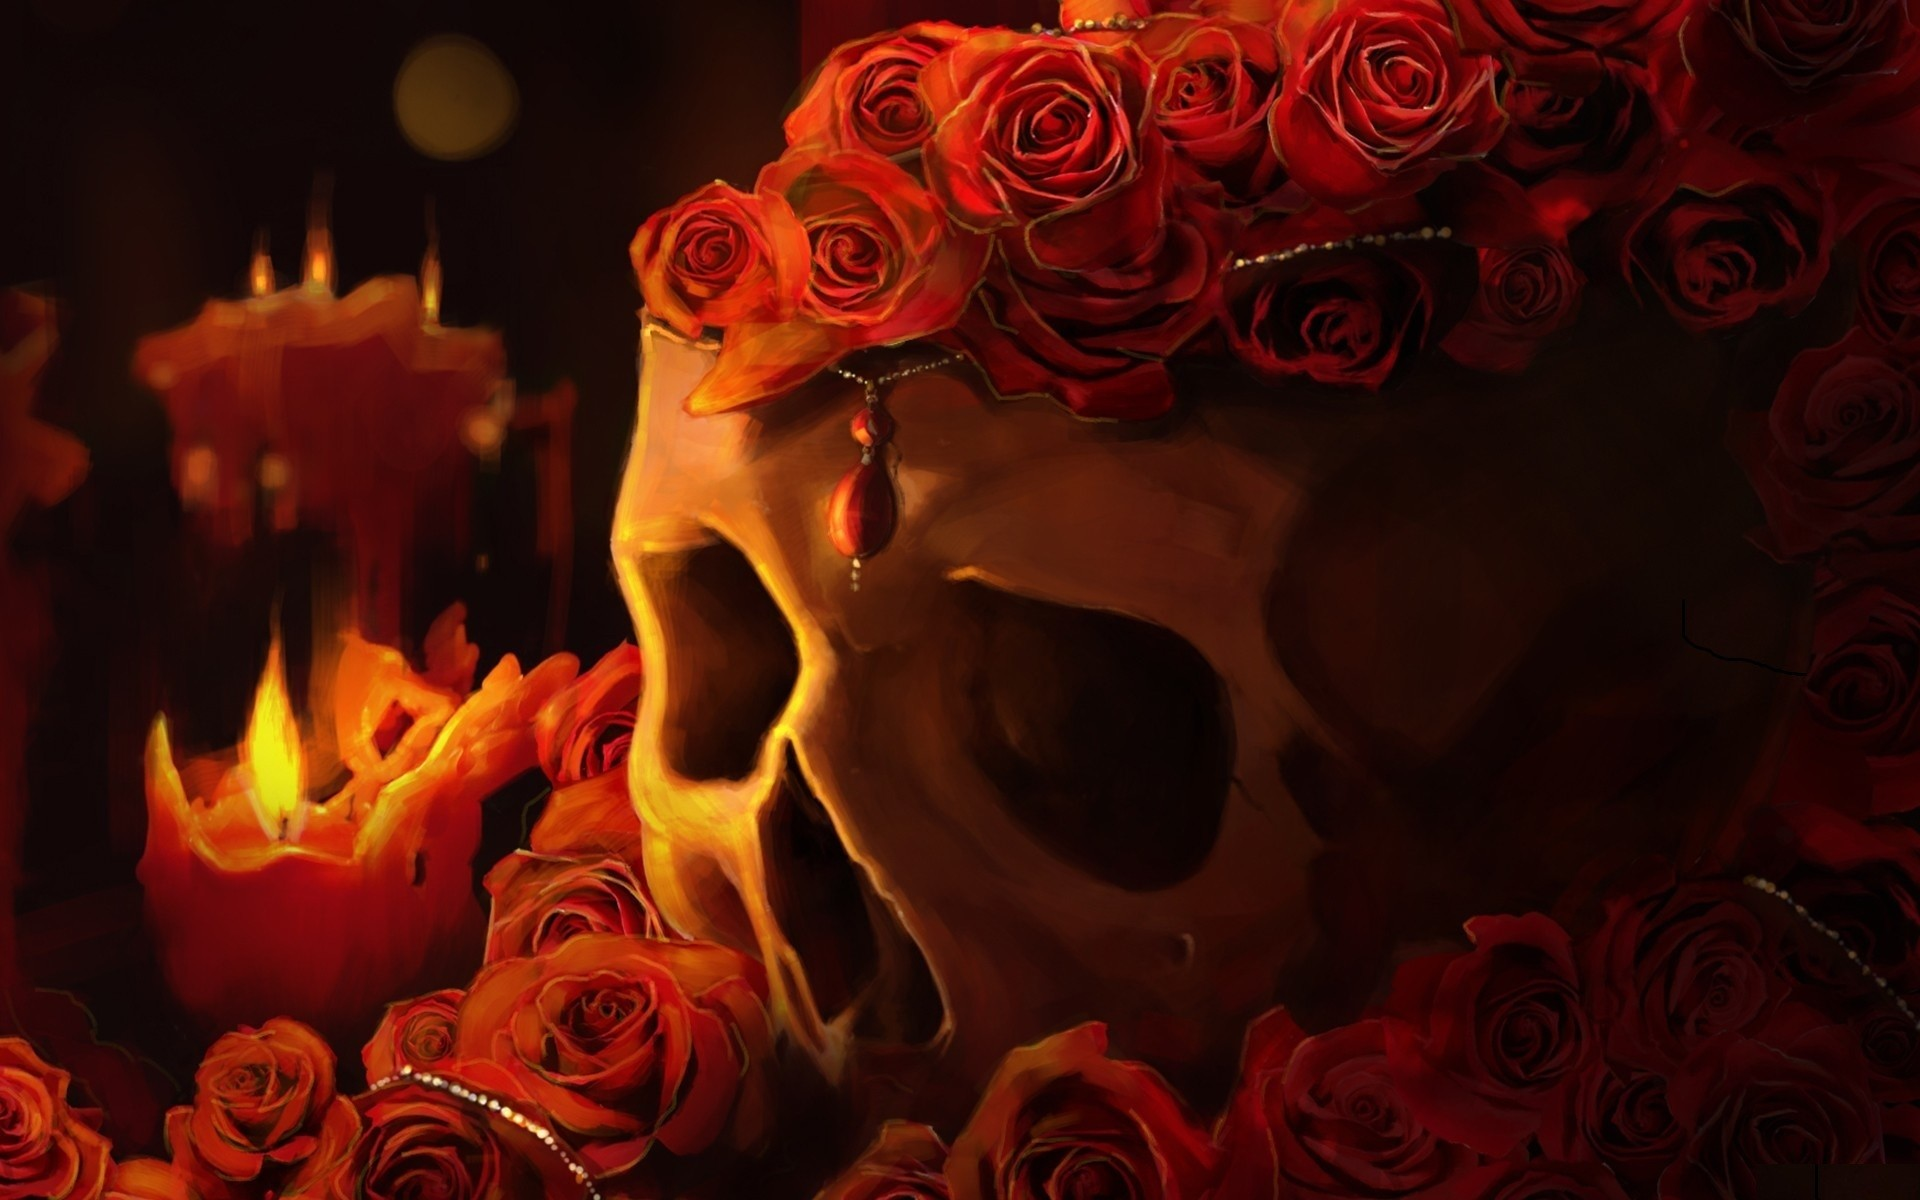 1920x1200 Skulls Roses Candles Fantasy Candle Skull Goth Gothic Fire Dark Wallpaper  At Dark Wallpapers